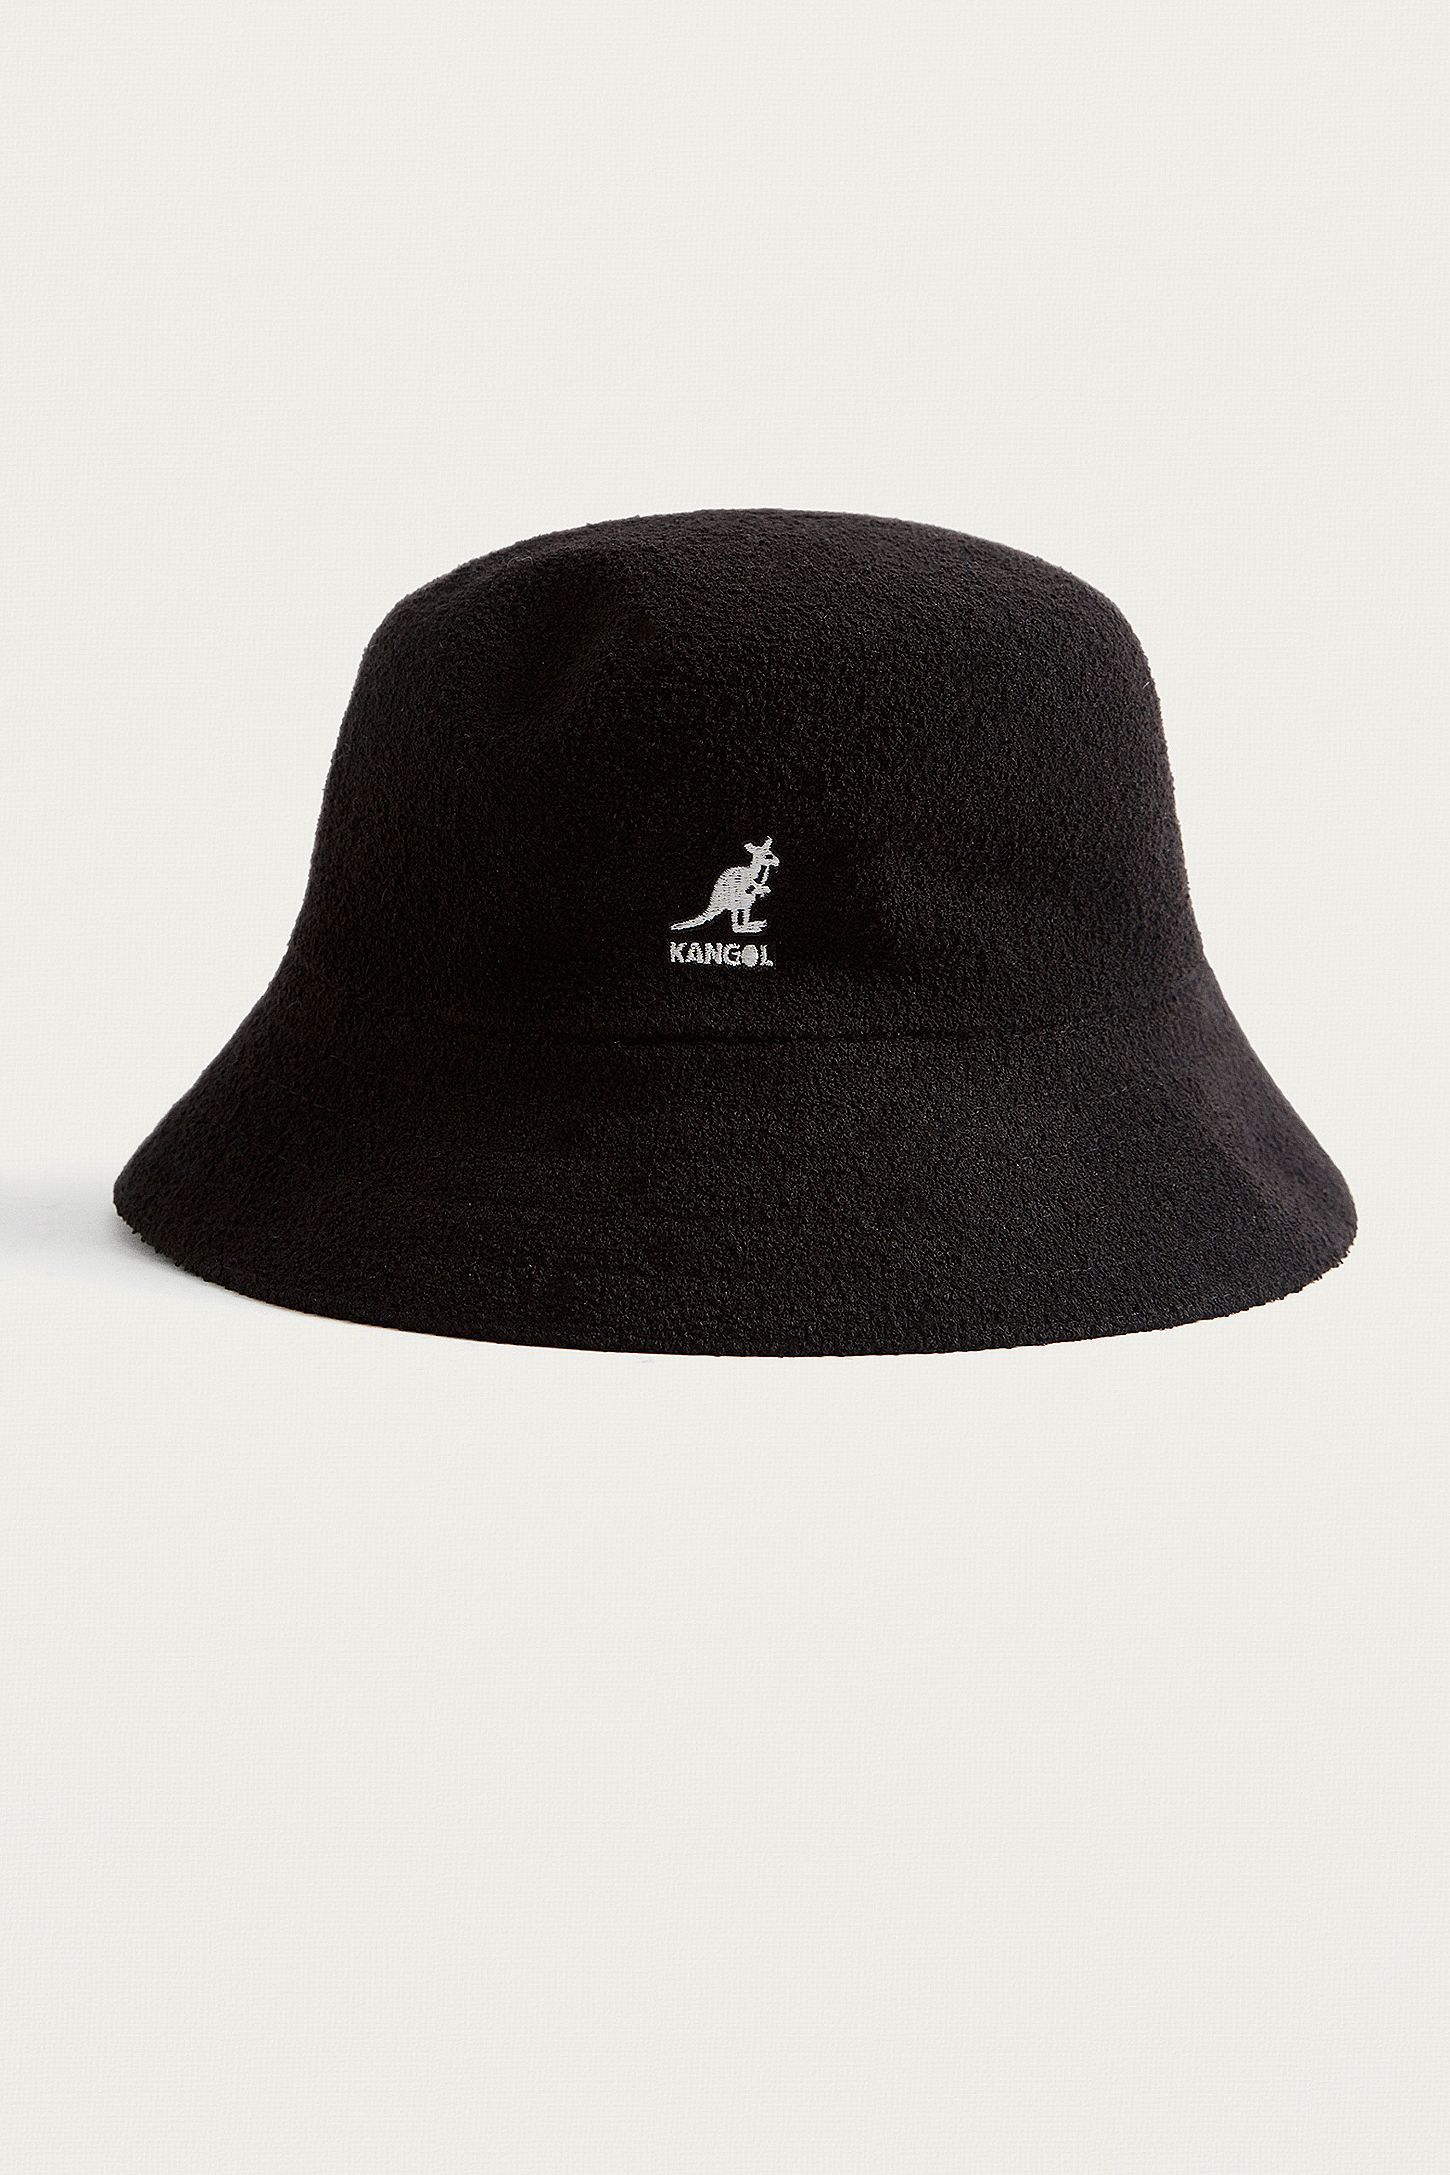 09f529b2814e5 Kangol Bermuda Black Bucket Hat. Click on image to zoom. Hover to zoom.  Double Tap to Zoom